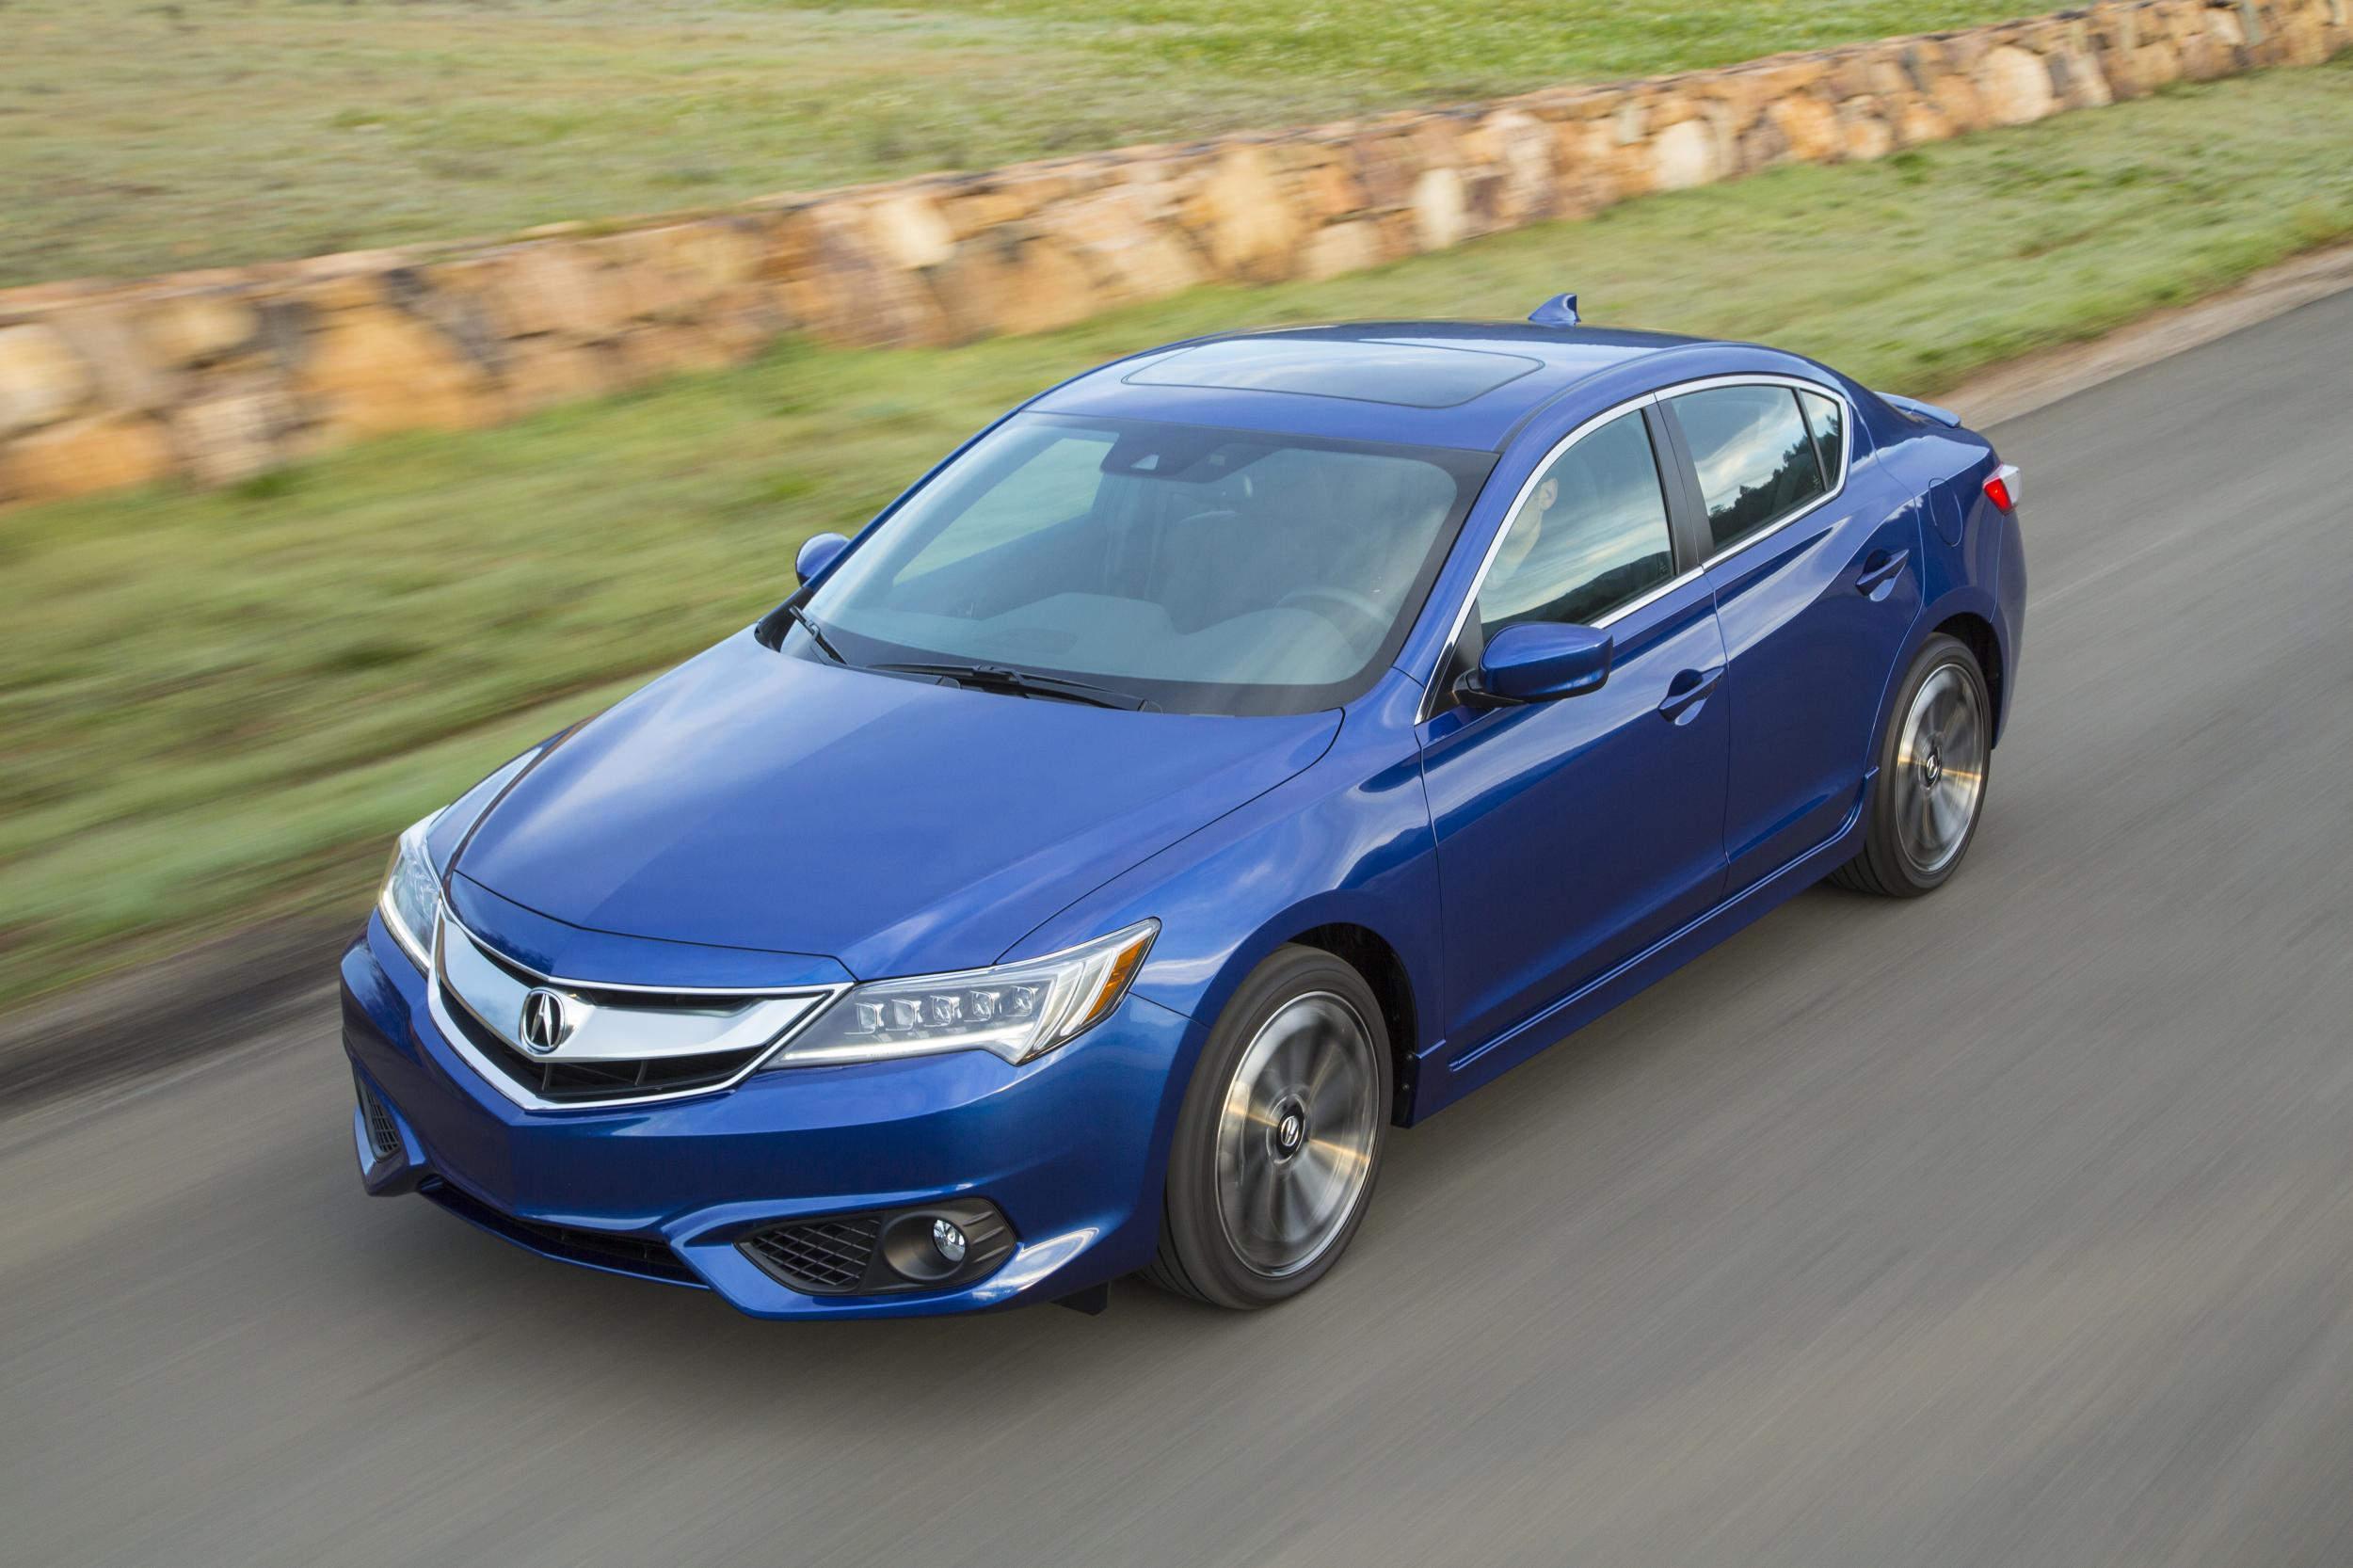 of photo los ratings acura divulged economy video teased and tlx auto news pricing ahead ilx angeles debut fuel show gallery